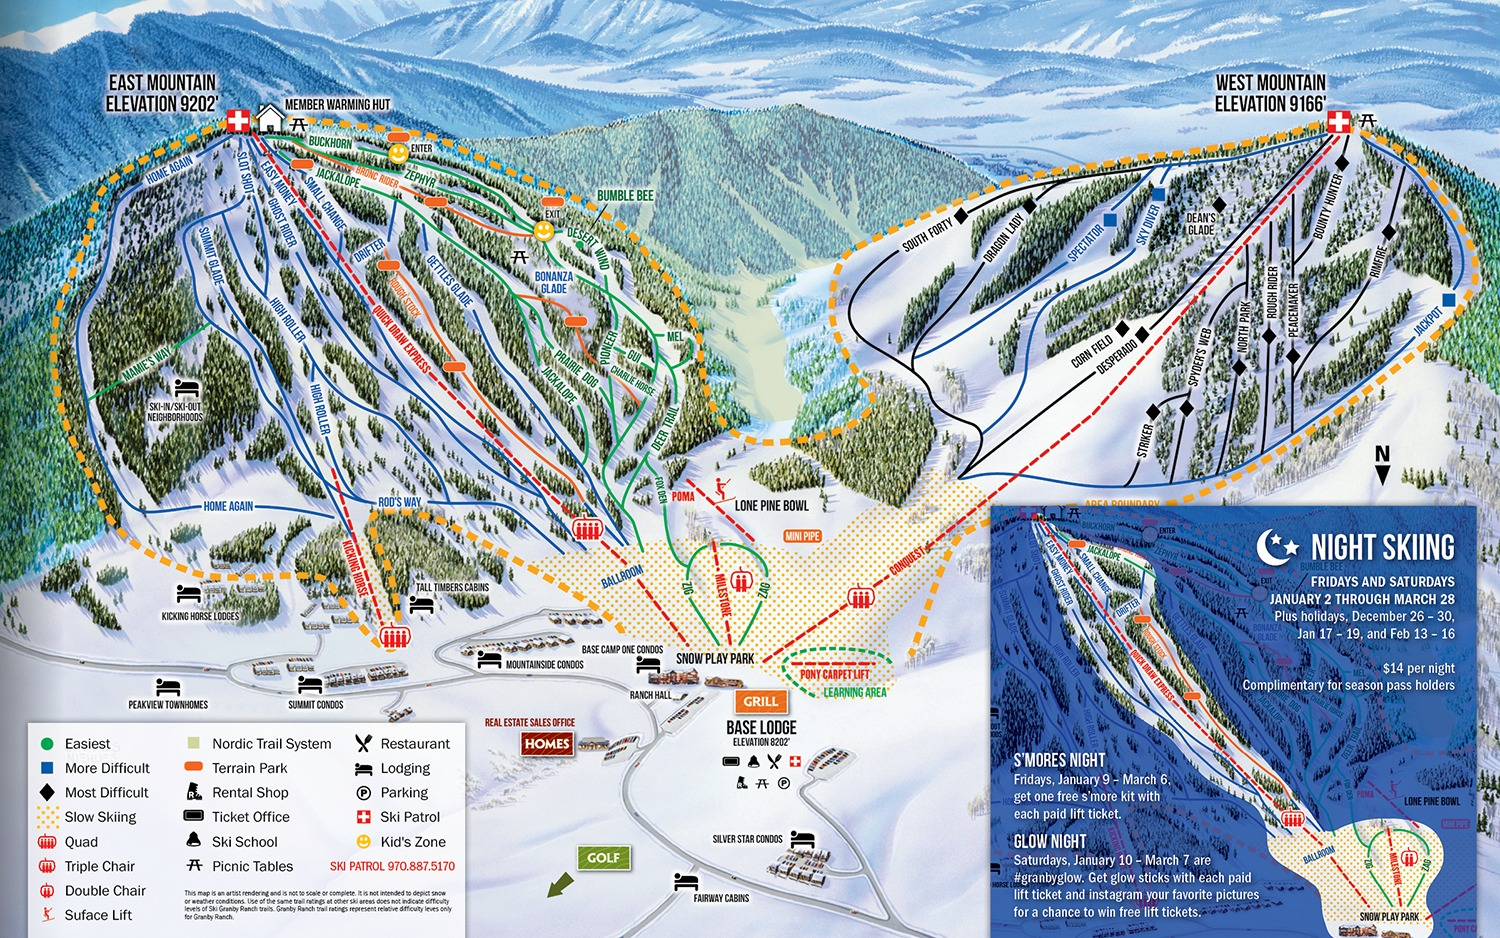 snowshoe wv map with Trailmap on The greenbrier classic history and past winners additionally Haptic Snowboard Teaches You The Slopes further Skimaps as well 181 likewise New River Gorge Bridge Infographic Height  parison.